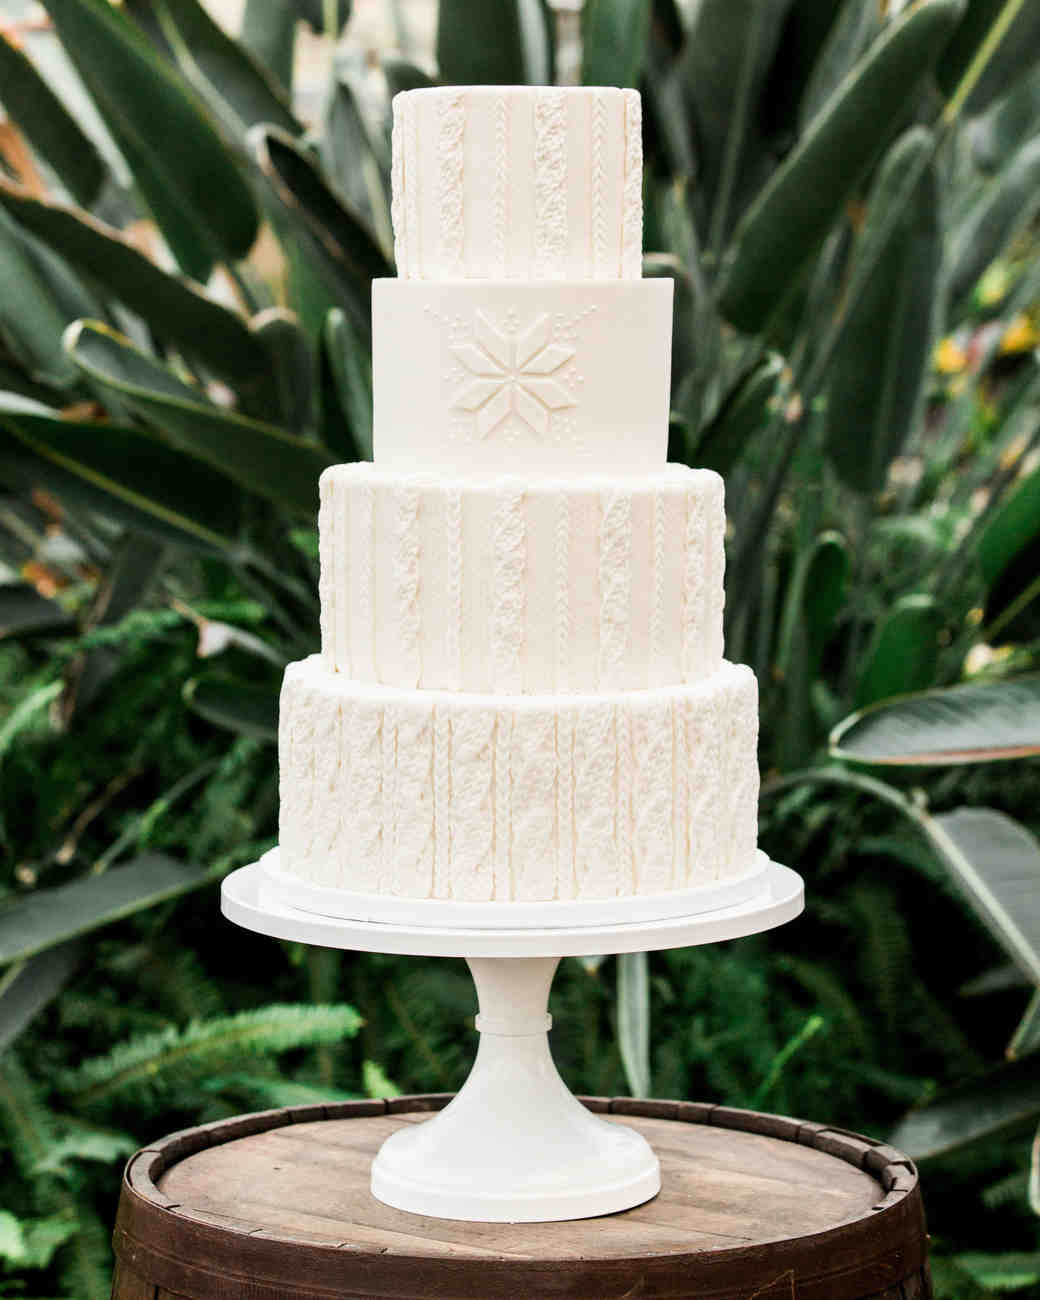 four tier wedding cake with sweater design